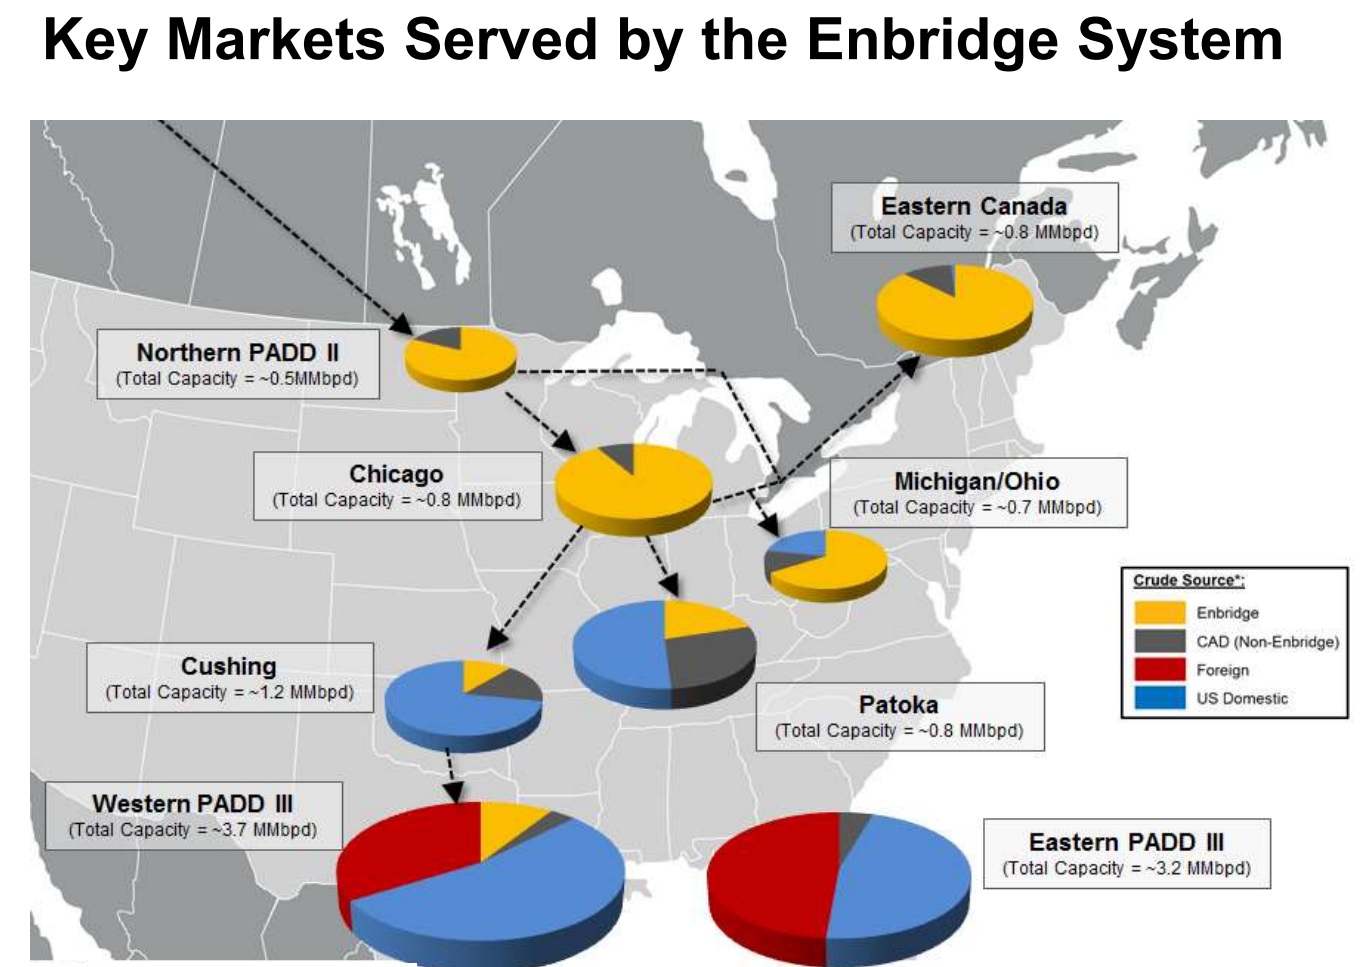 Enbridge Energy Partners As The Prime Operator In This Region Has The  Ability To Take Advantage Of This Capacity Shortfall